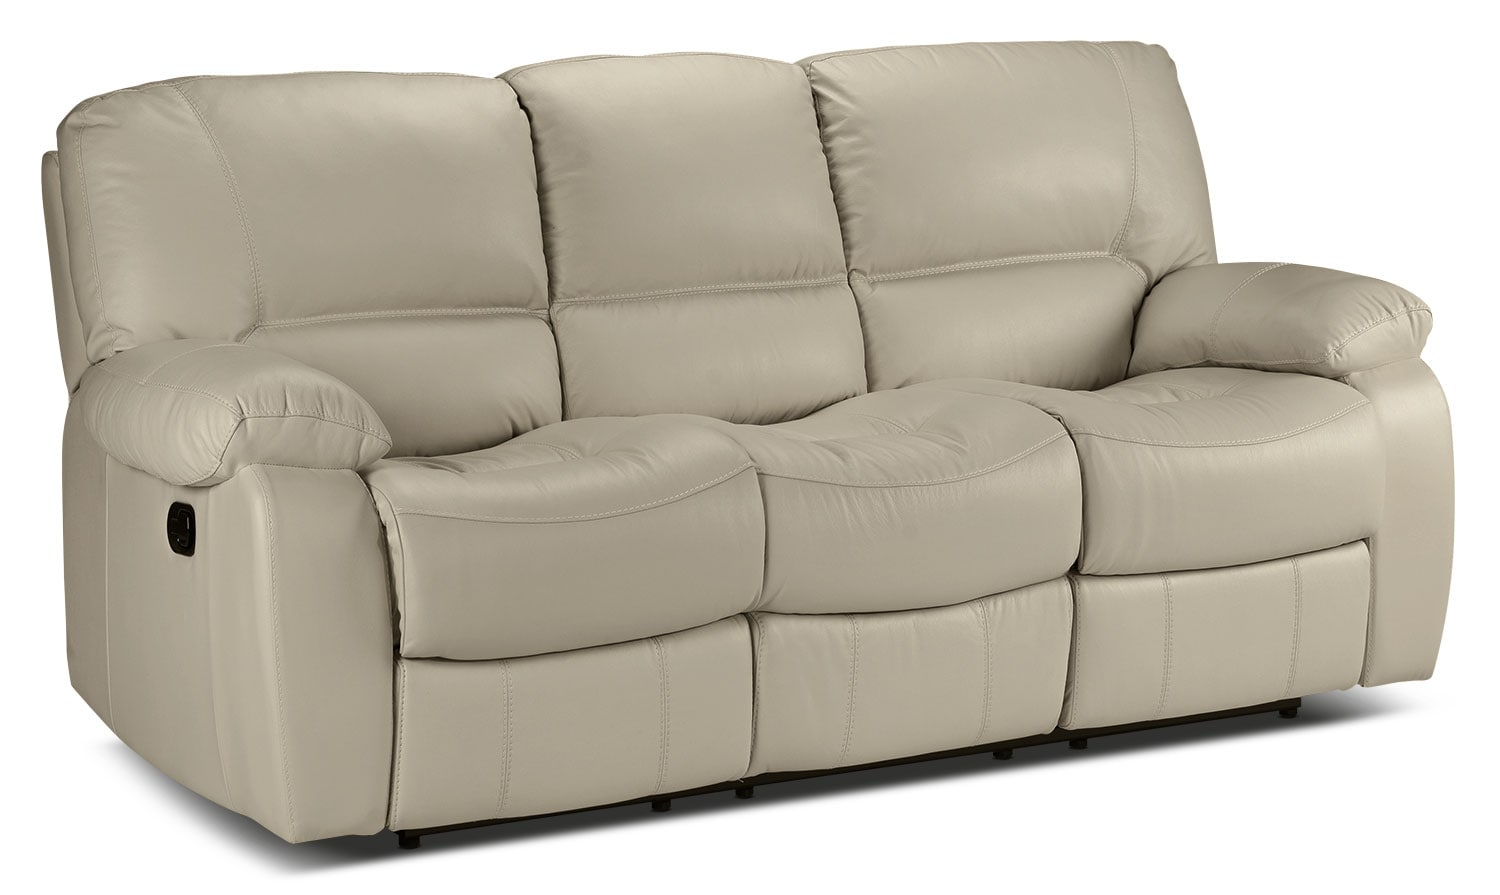 Leather Sectional Small Living Room